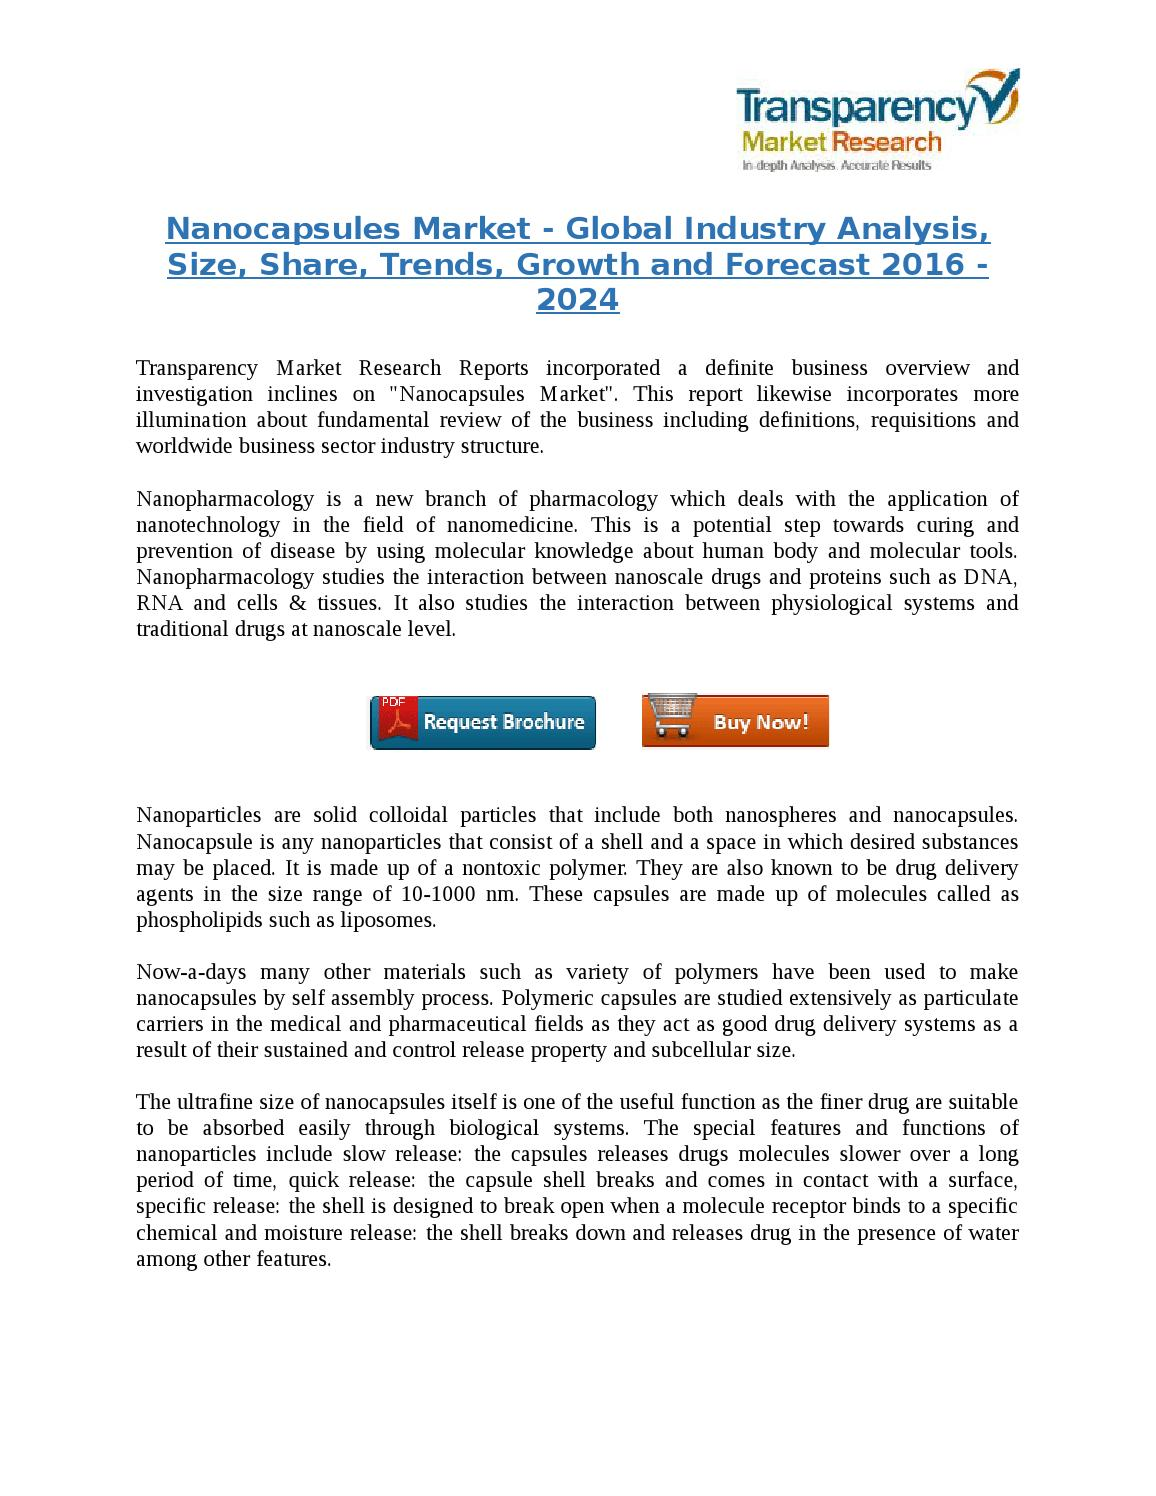 Nanocapsules Market - Global Industry Analysis, Trends